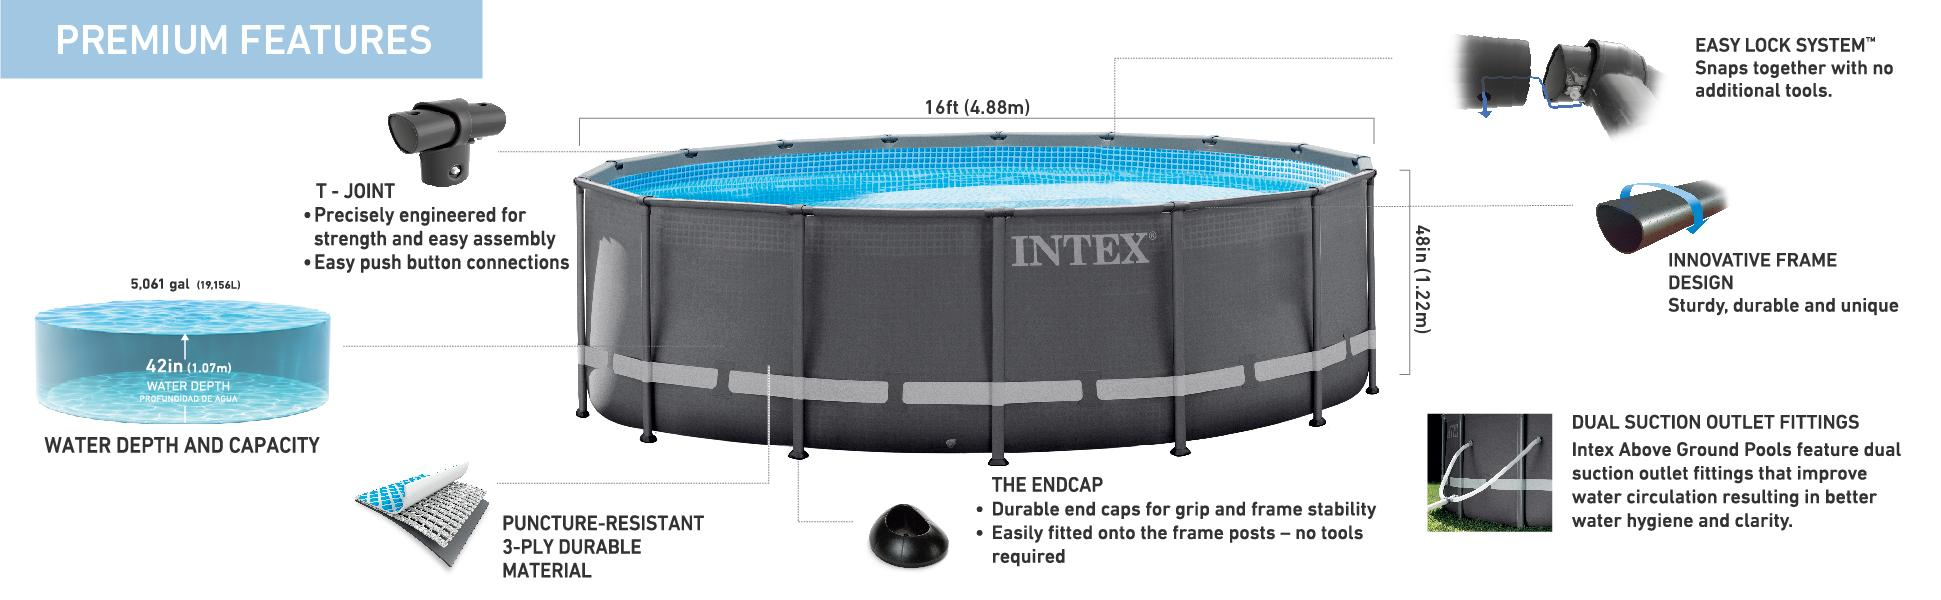 Intex Above Ground Pool For View Larger Amazoncom Intex 16ft 48in Ultra Frame Pool Set With Sand Filter